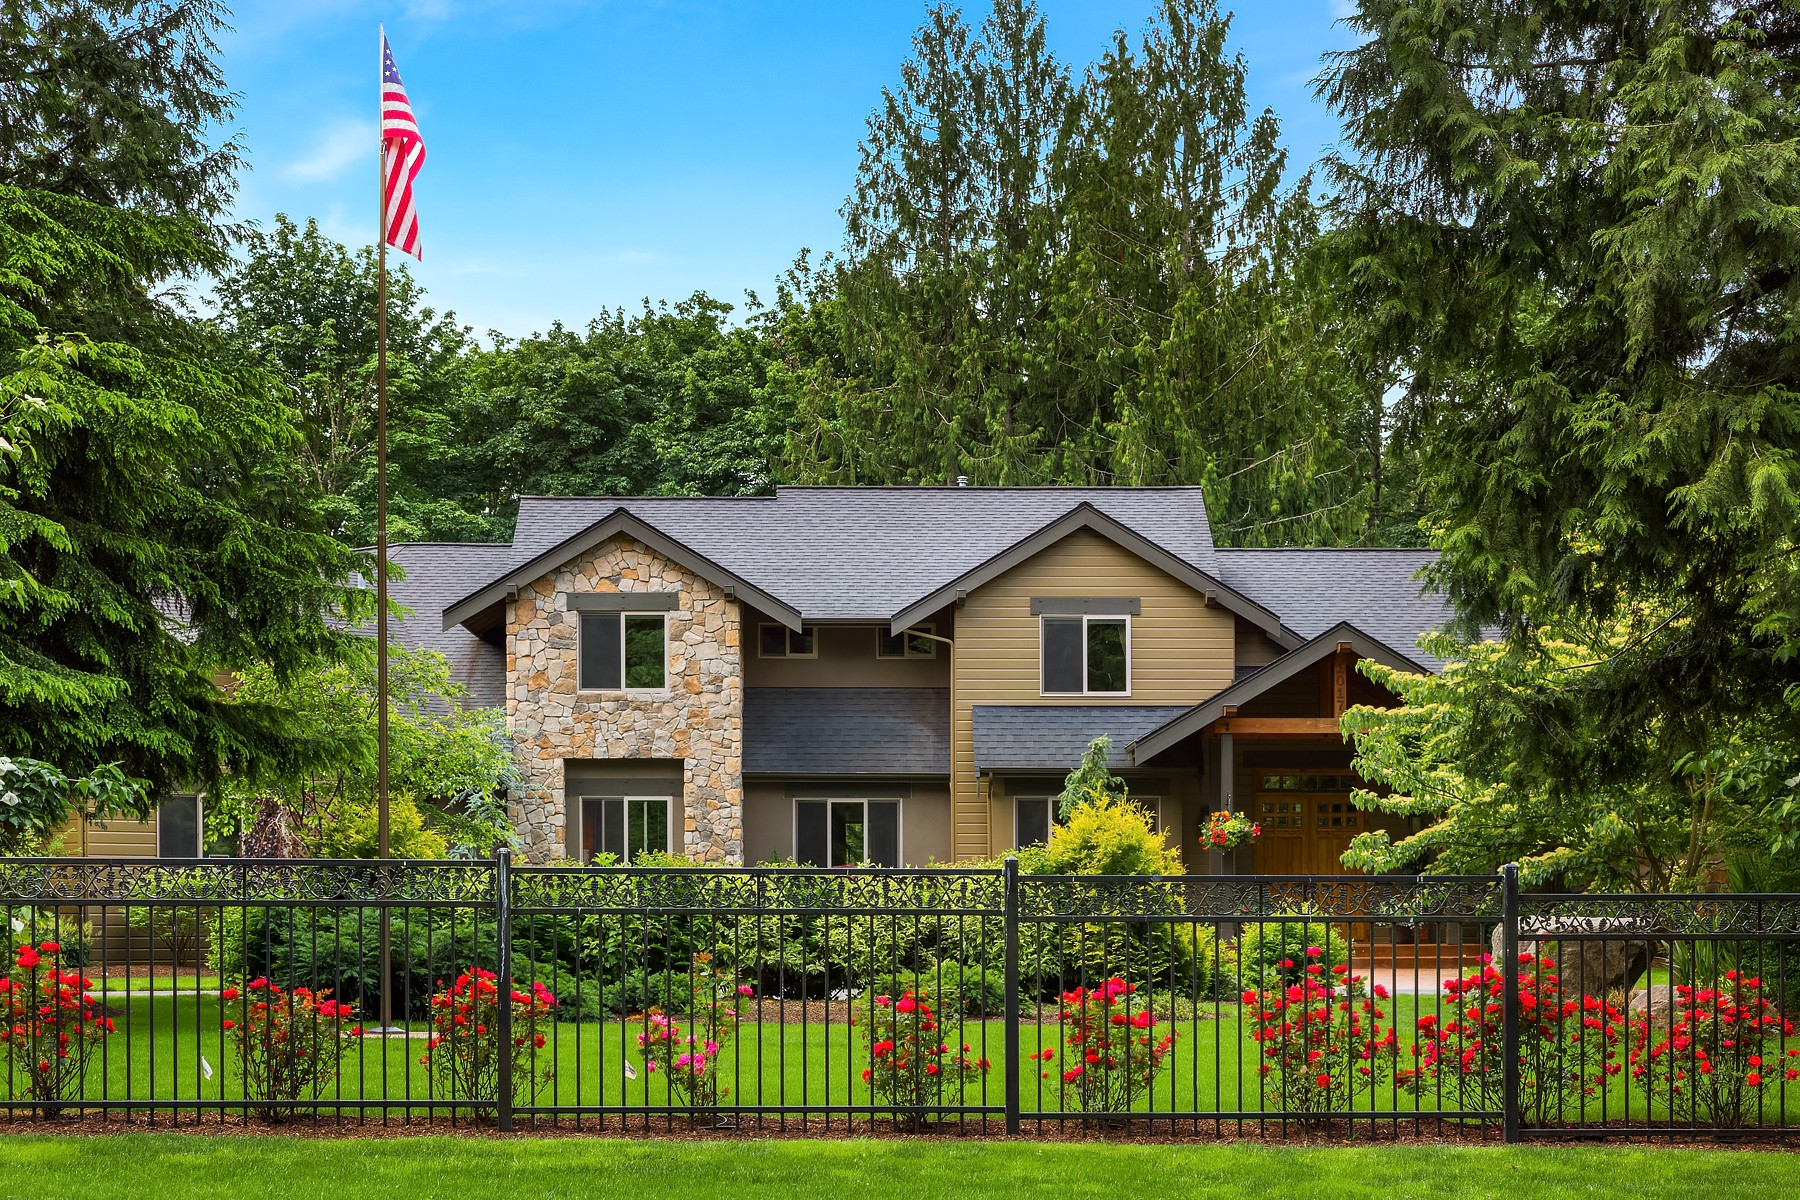 Single Family Home for Sale at Treemont 1017 Treemont Wy SE Fall City, Washington 98024 United States